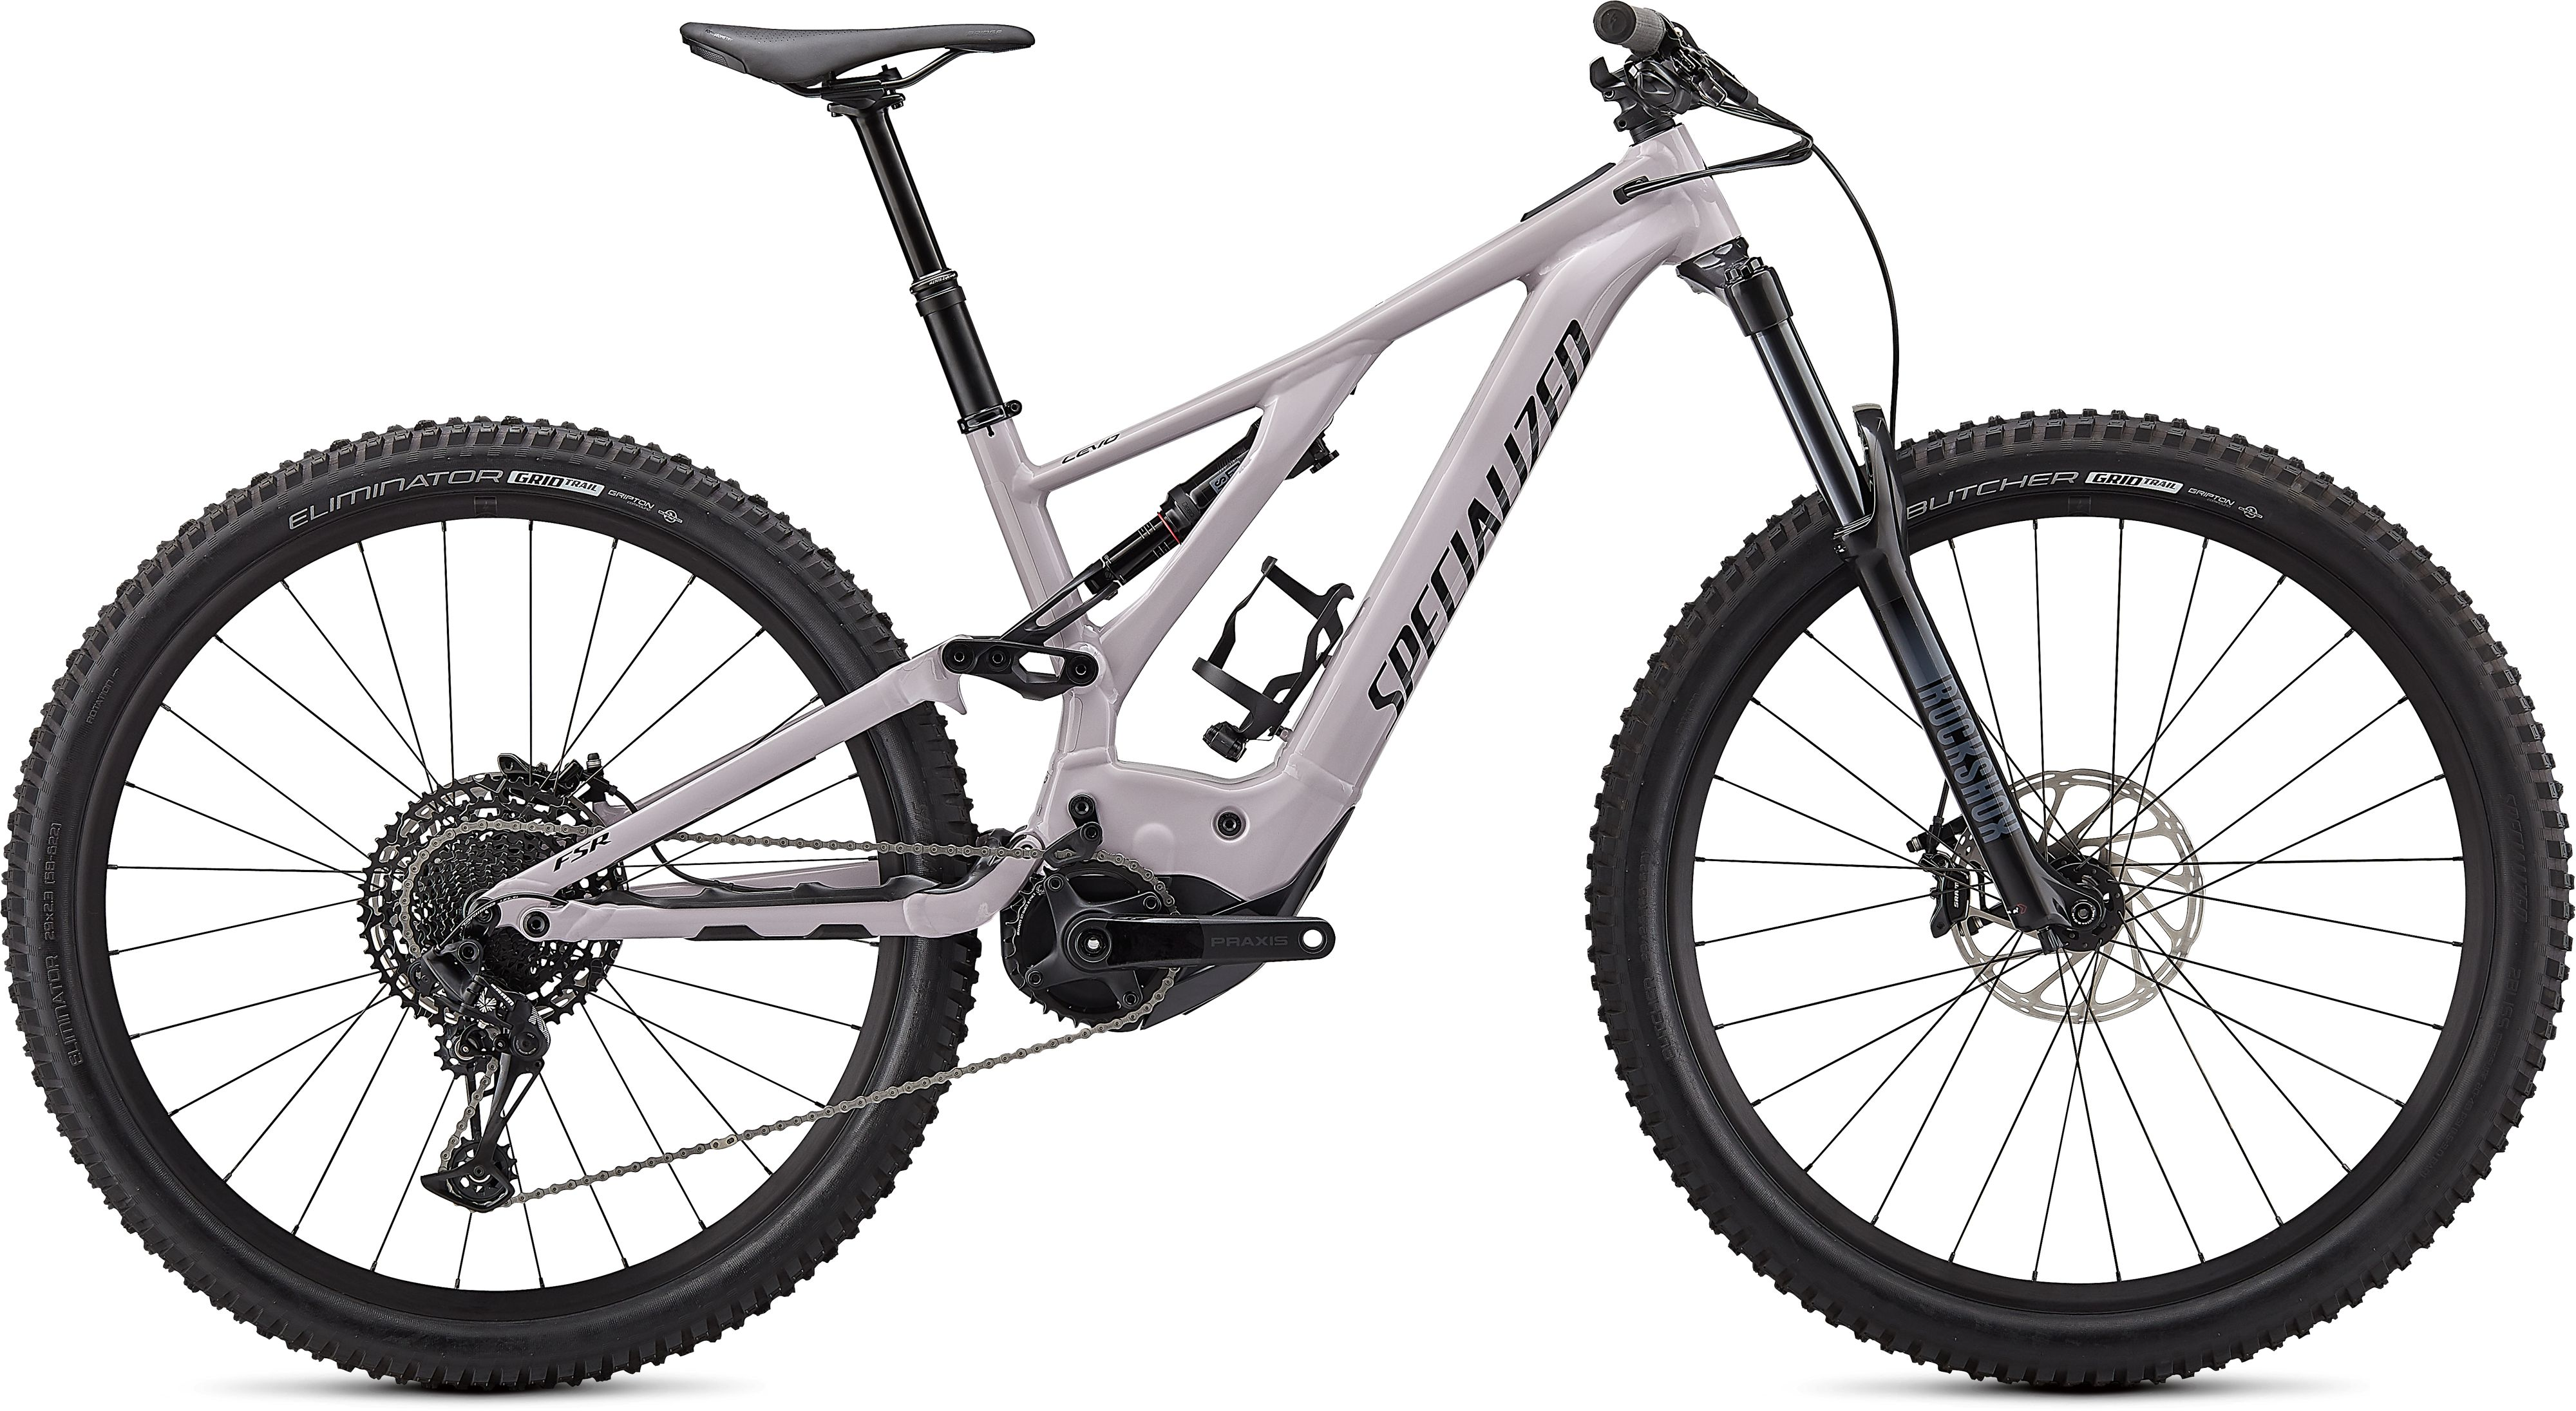 Specialized Turbo Levo 29er Electric Mountain Bike